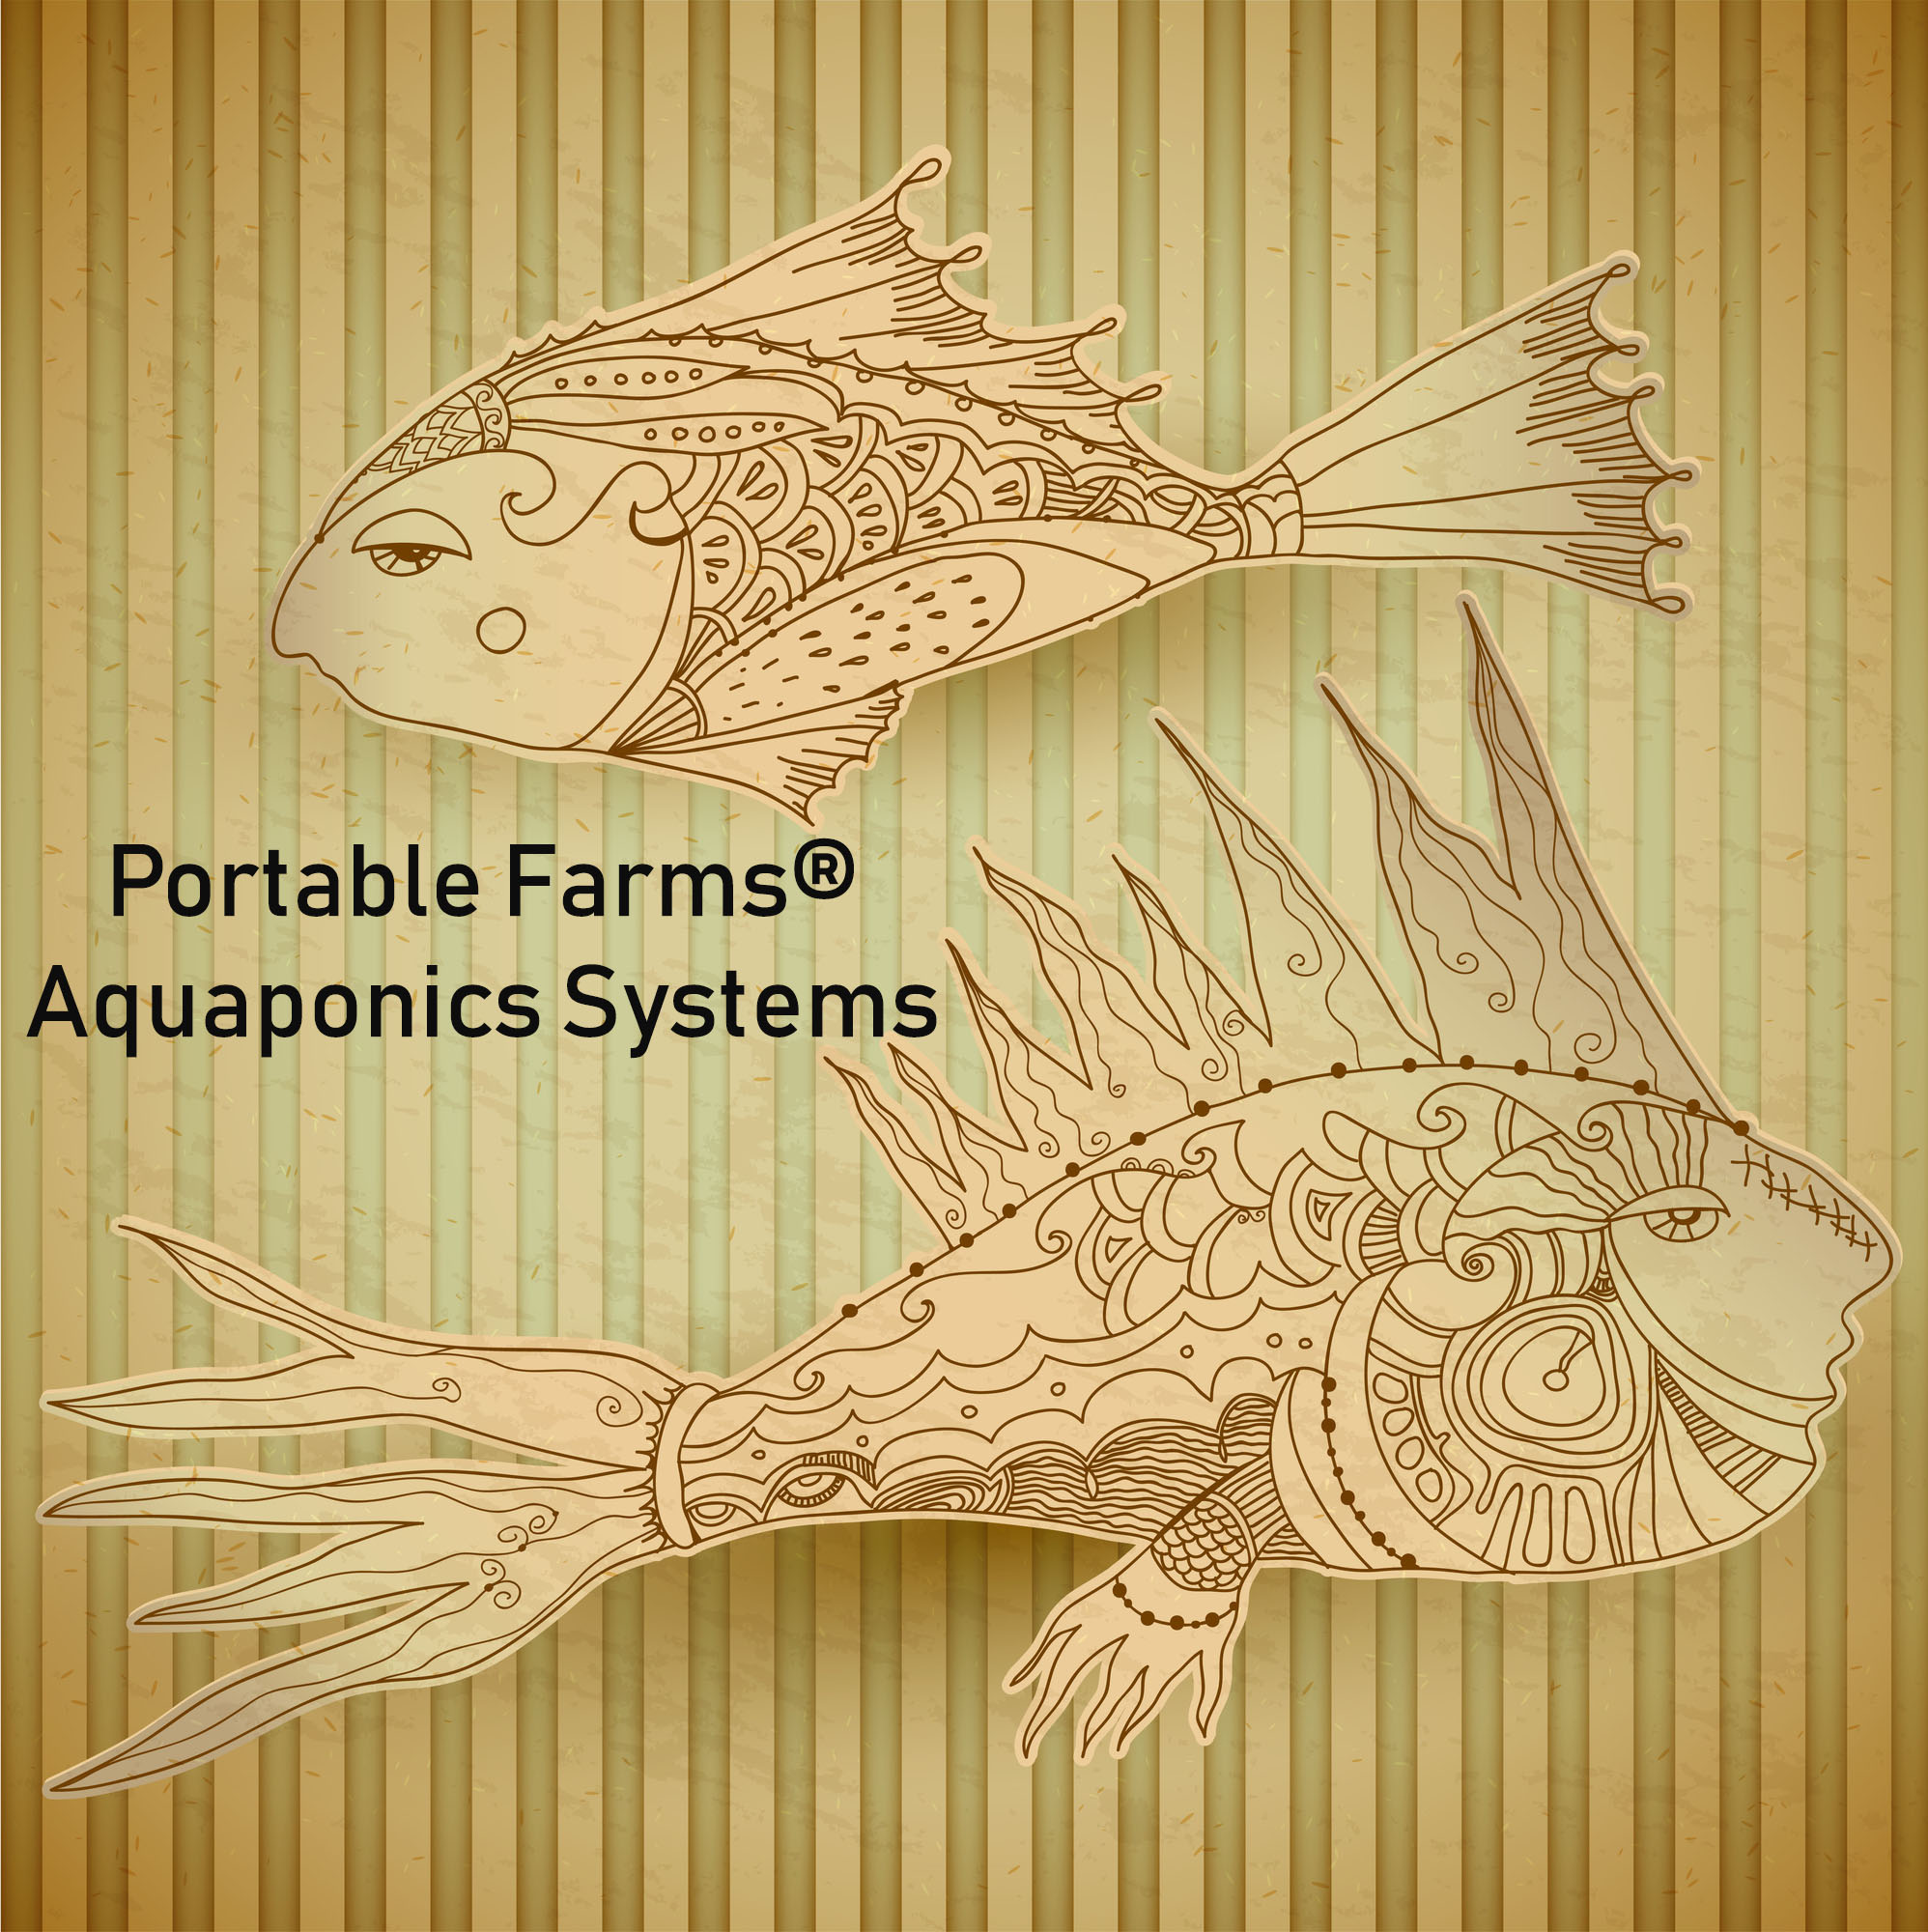 Aquaponics with Portable Farms Aquaponics Systems